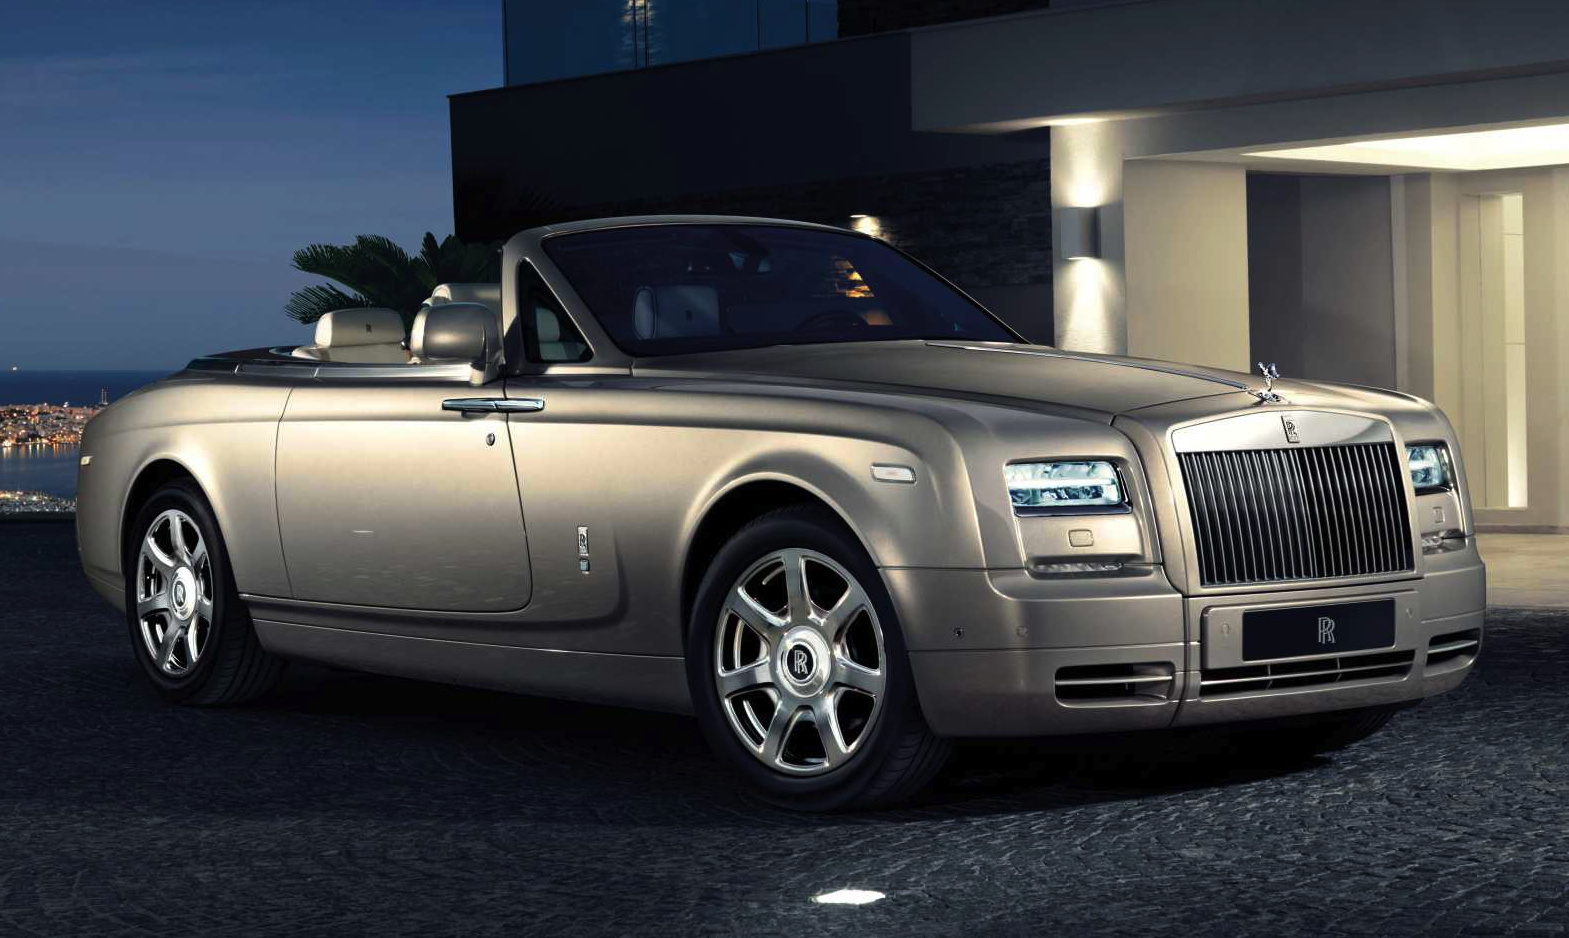 2014 Rolls royce Phantom Drophead Coupe #21